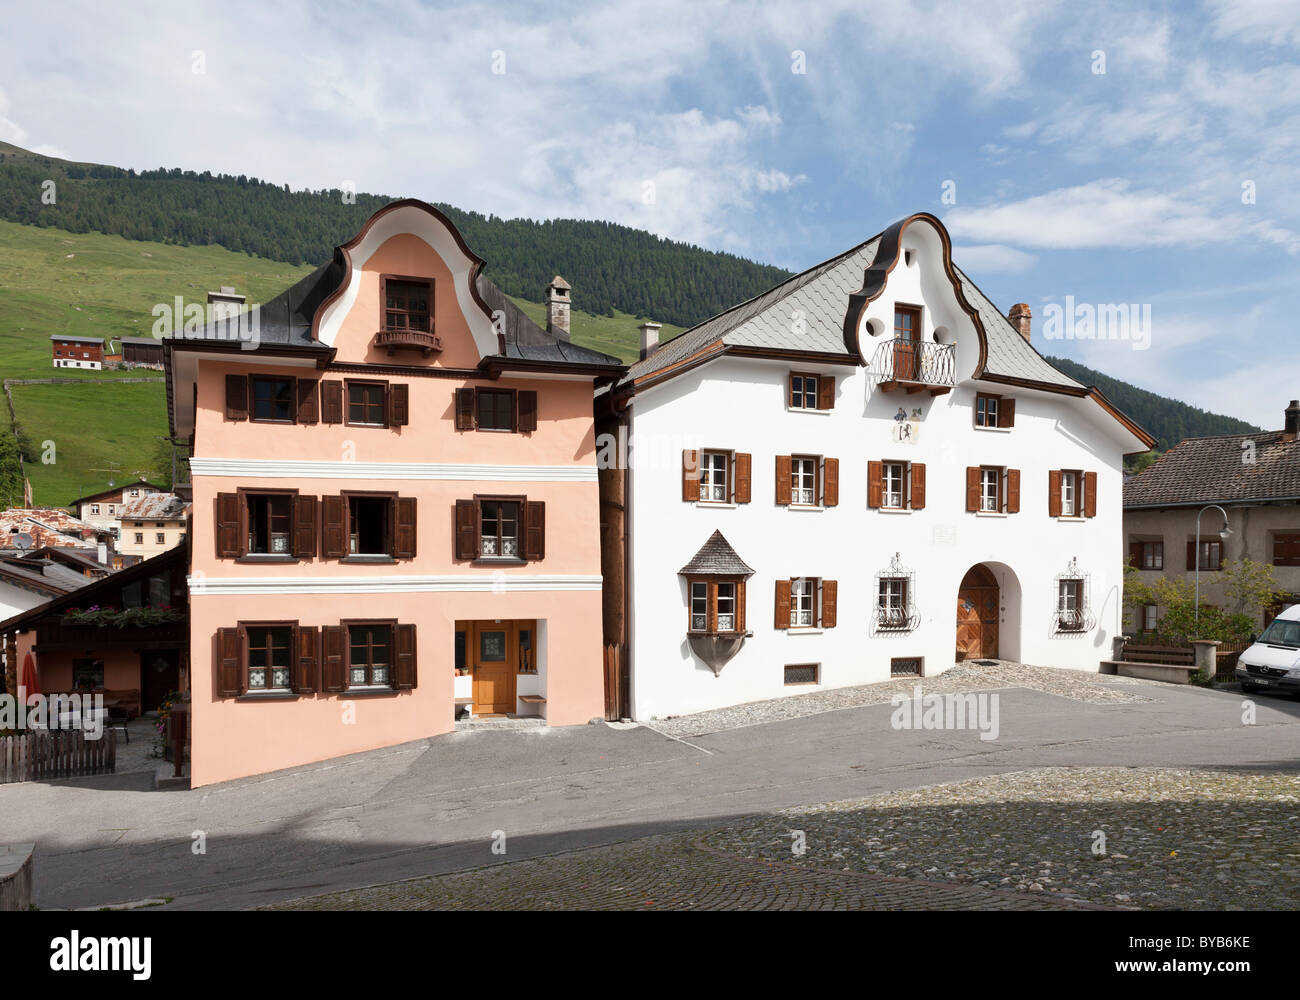 Historic houses in Sent, Lower Engadine, Graubuenden or Grisons, Switzerland, Europe - Stock Image